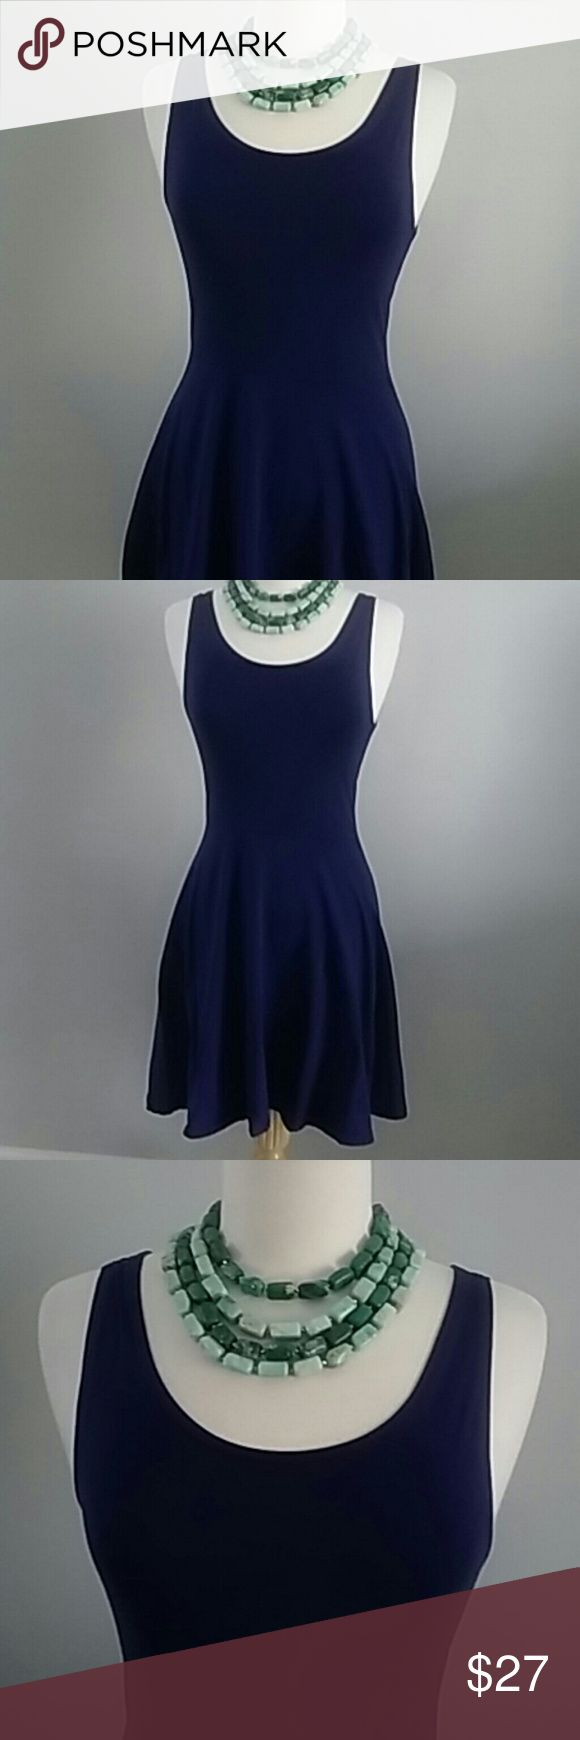 TOPSHOP SUPER CUTE VIOLET SLEEVELESS DRESS SIZE 6 TOPSHOP SUPER CUTE VIOLET DRESS COTTON LYCRA BLEND. TANK TYPE TOP WITH A FLIRTY SKIRT DESIGN ON THE BOTTOM. SIZE 6. Topshop Dresses